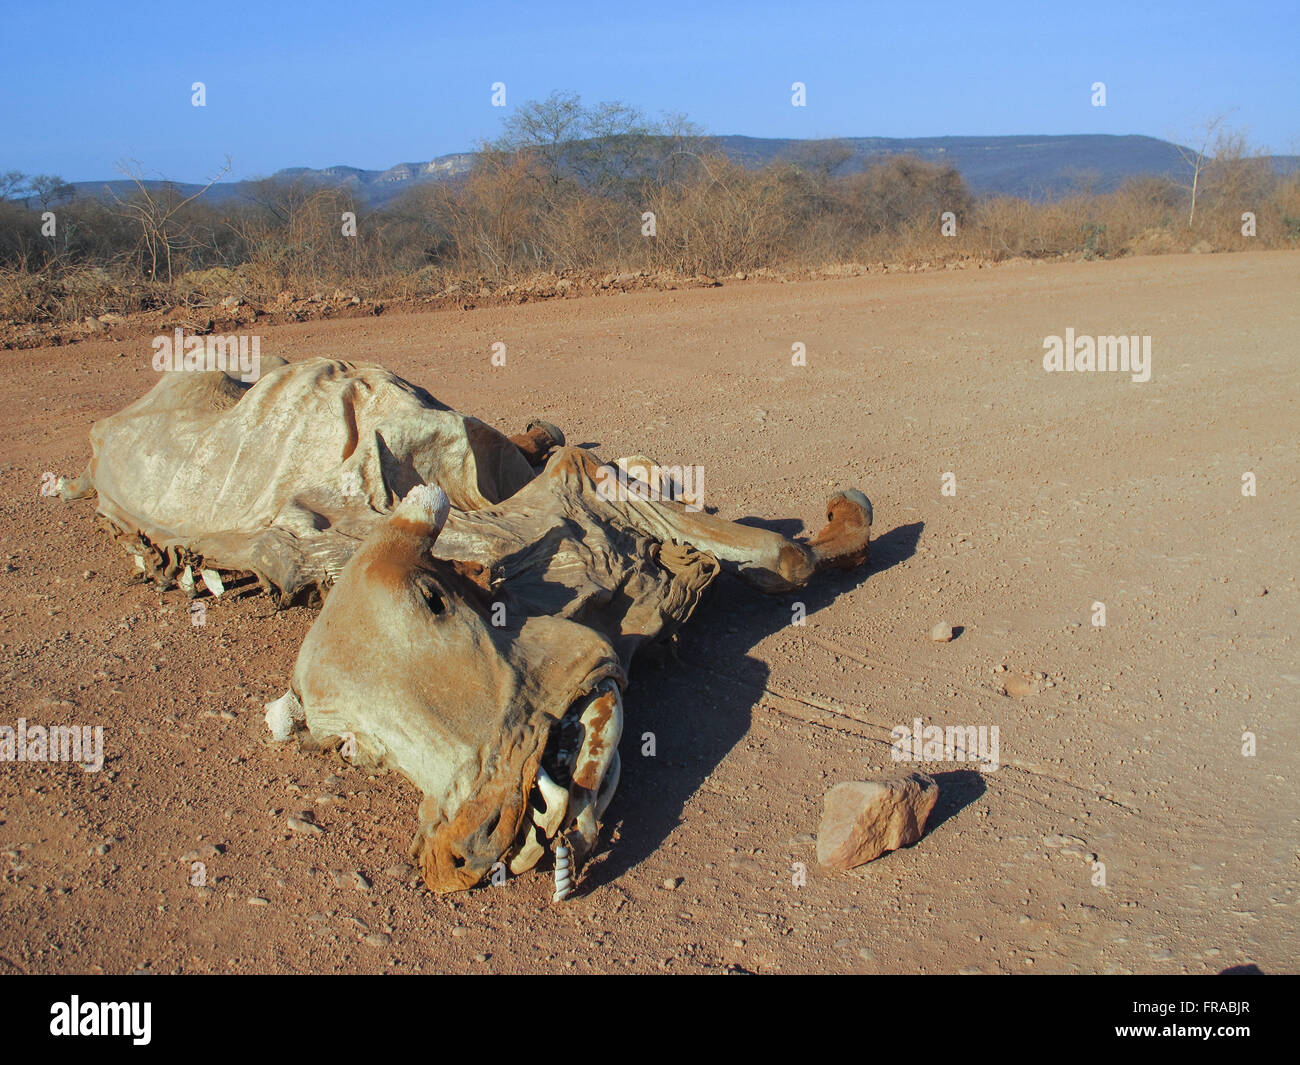 Cattle killed in area affected by drought in the northeastern backlands - Stock Image